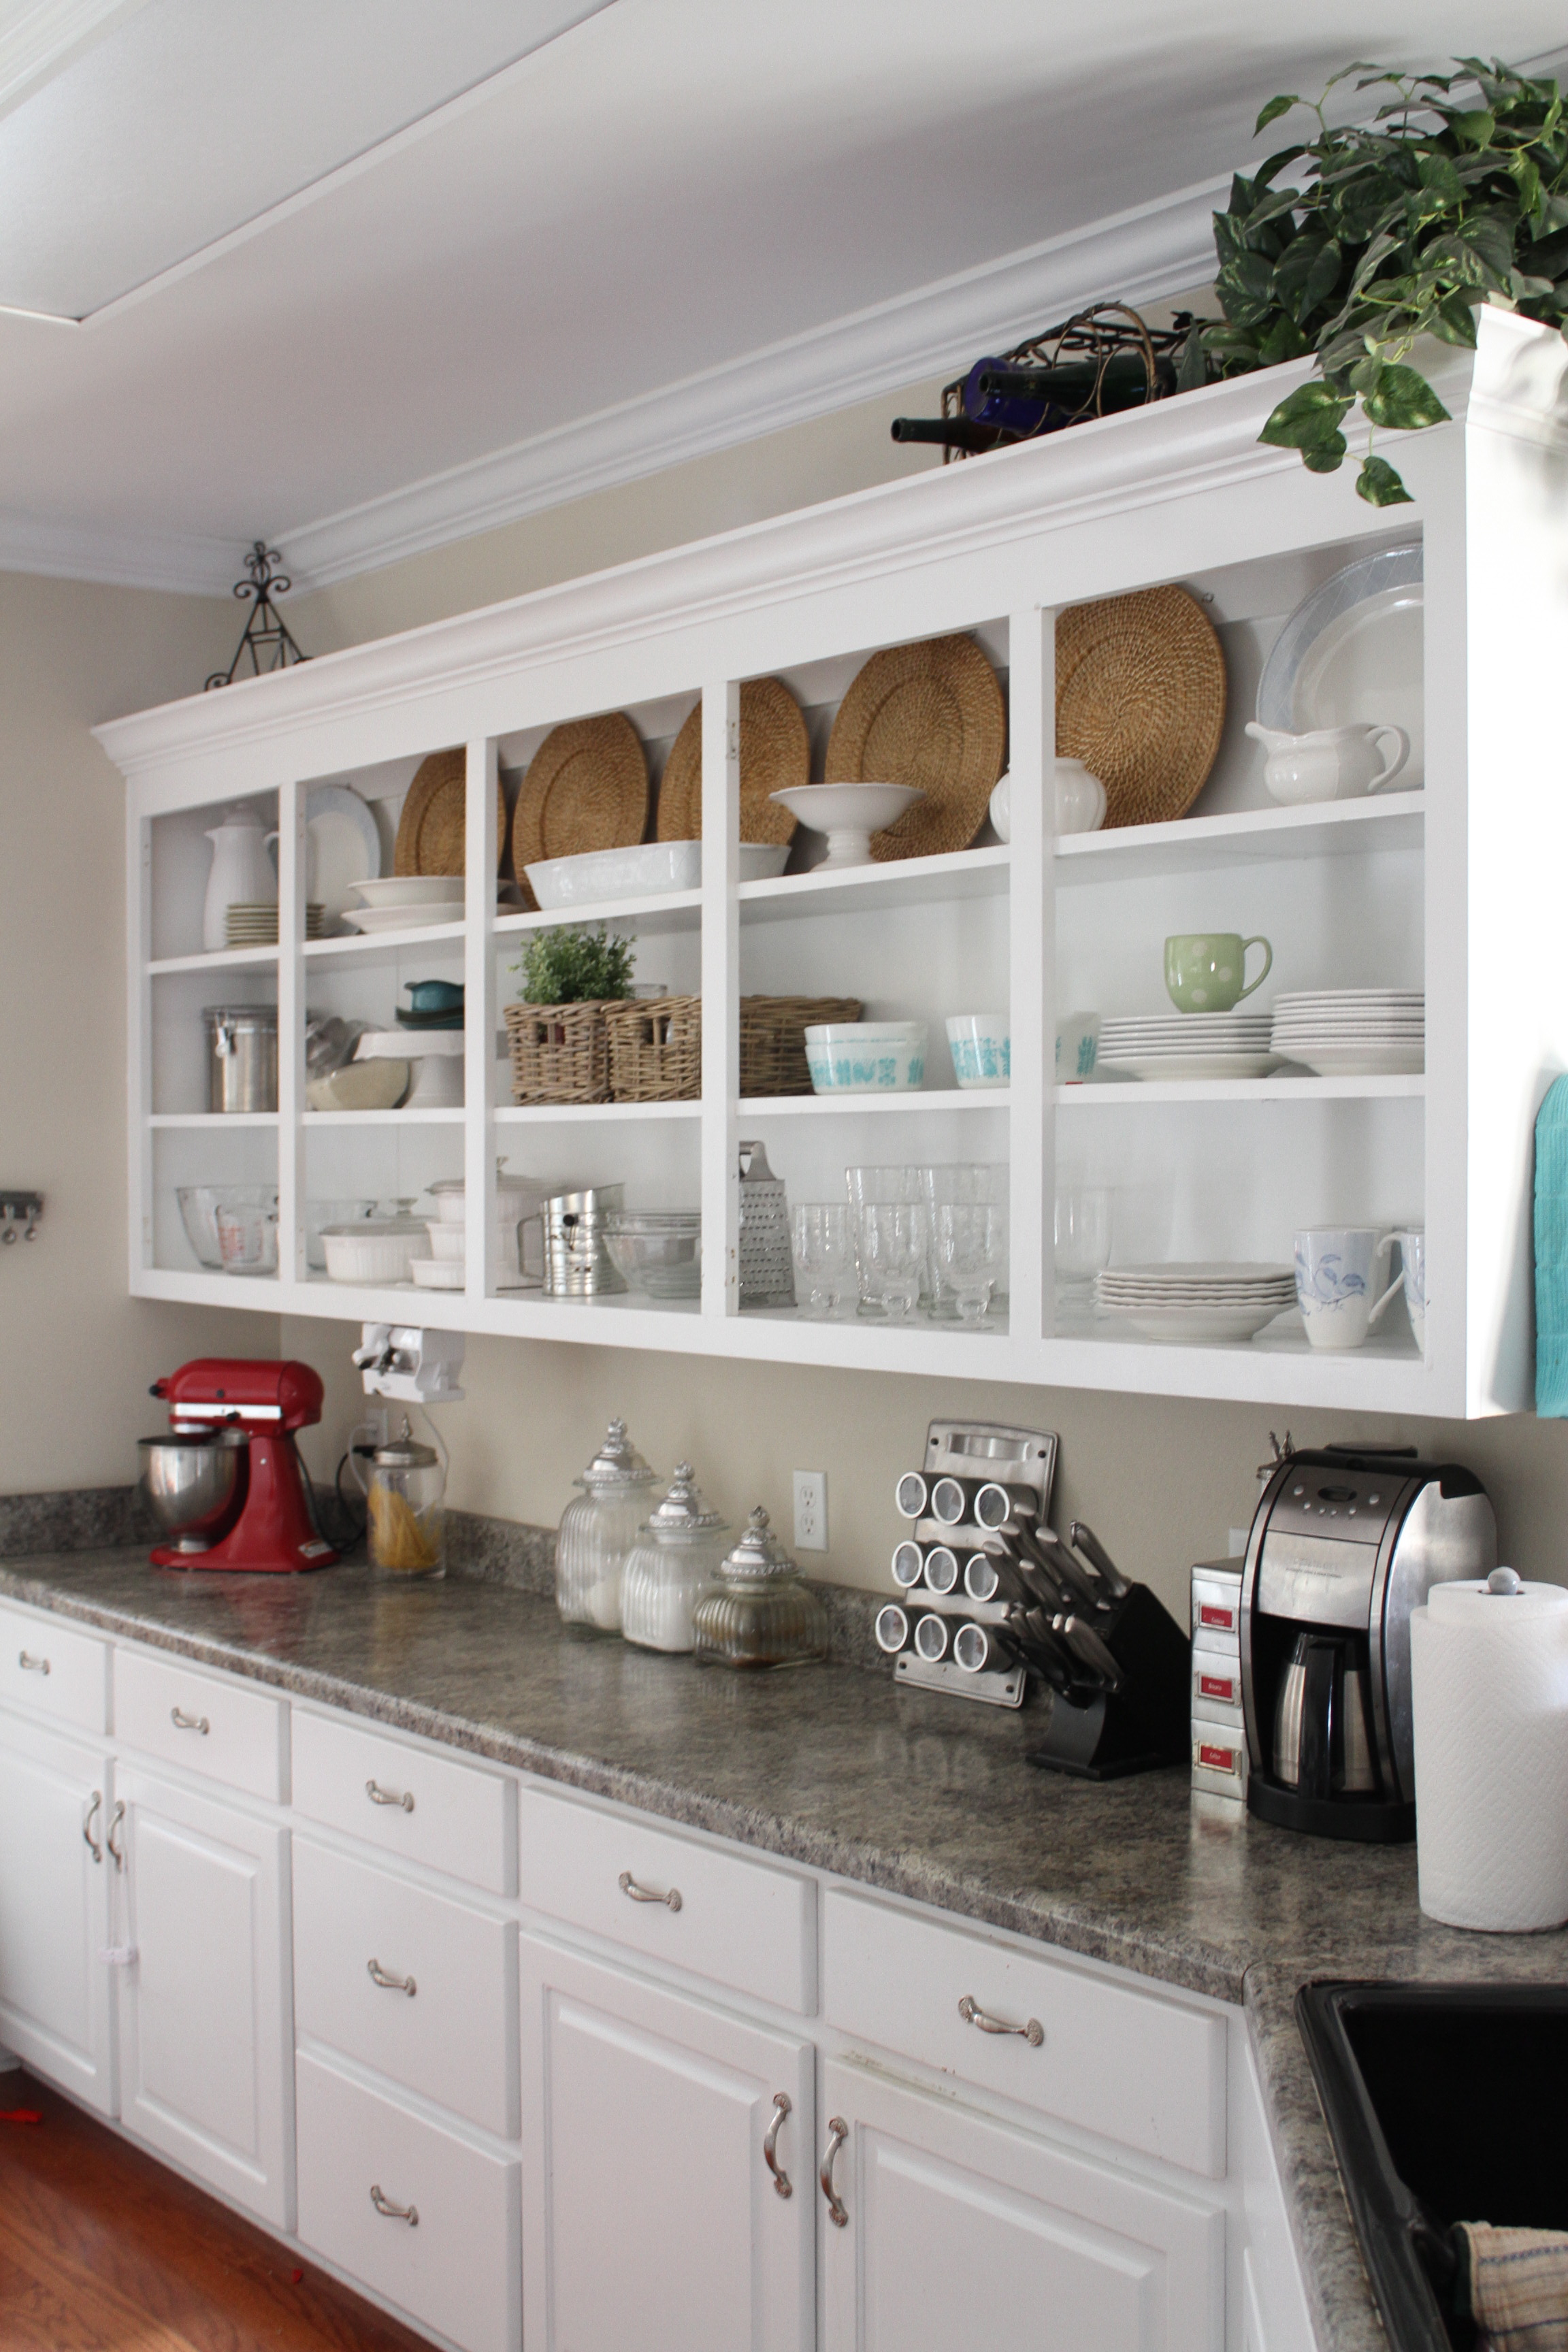 Kitchen Shelves Instead Of Cabinets Cottage Style Perfectly Imperfect Blog